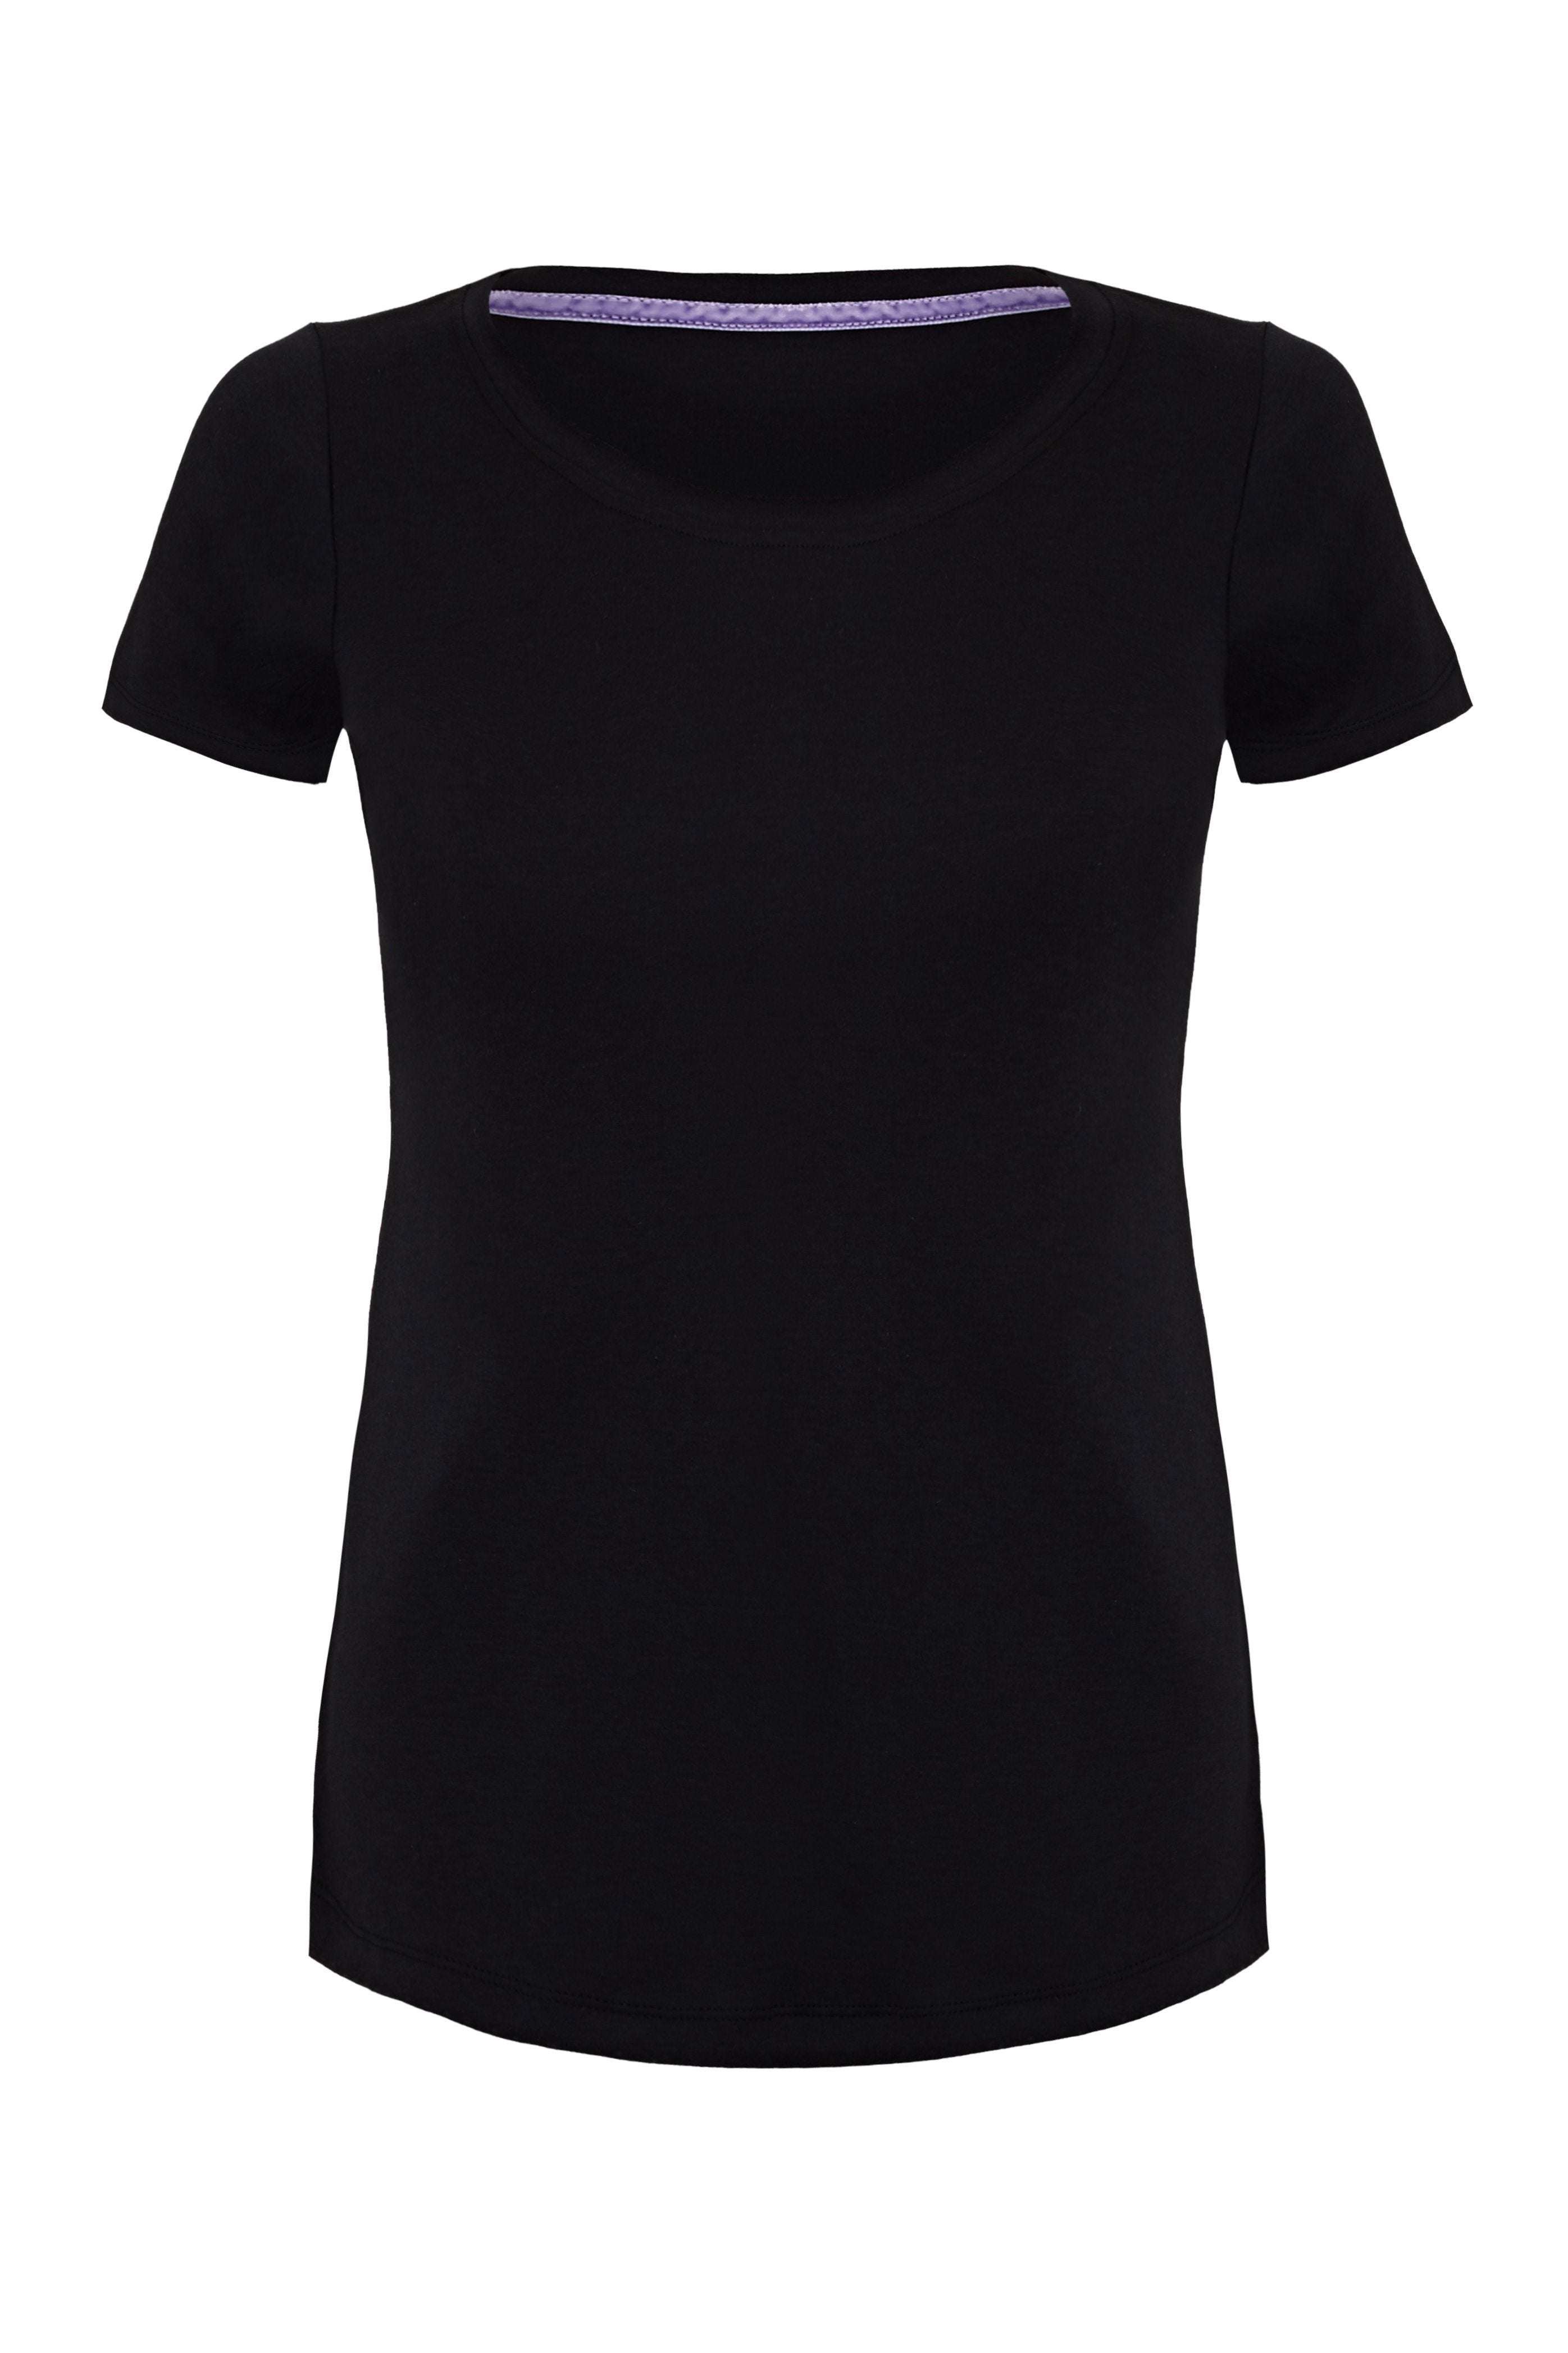 Classic Short Sleeve Scoop Neck T-Shirt - Mid-Weight Flattering Black T-Shirt - A Comfortable Quality Staple